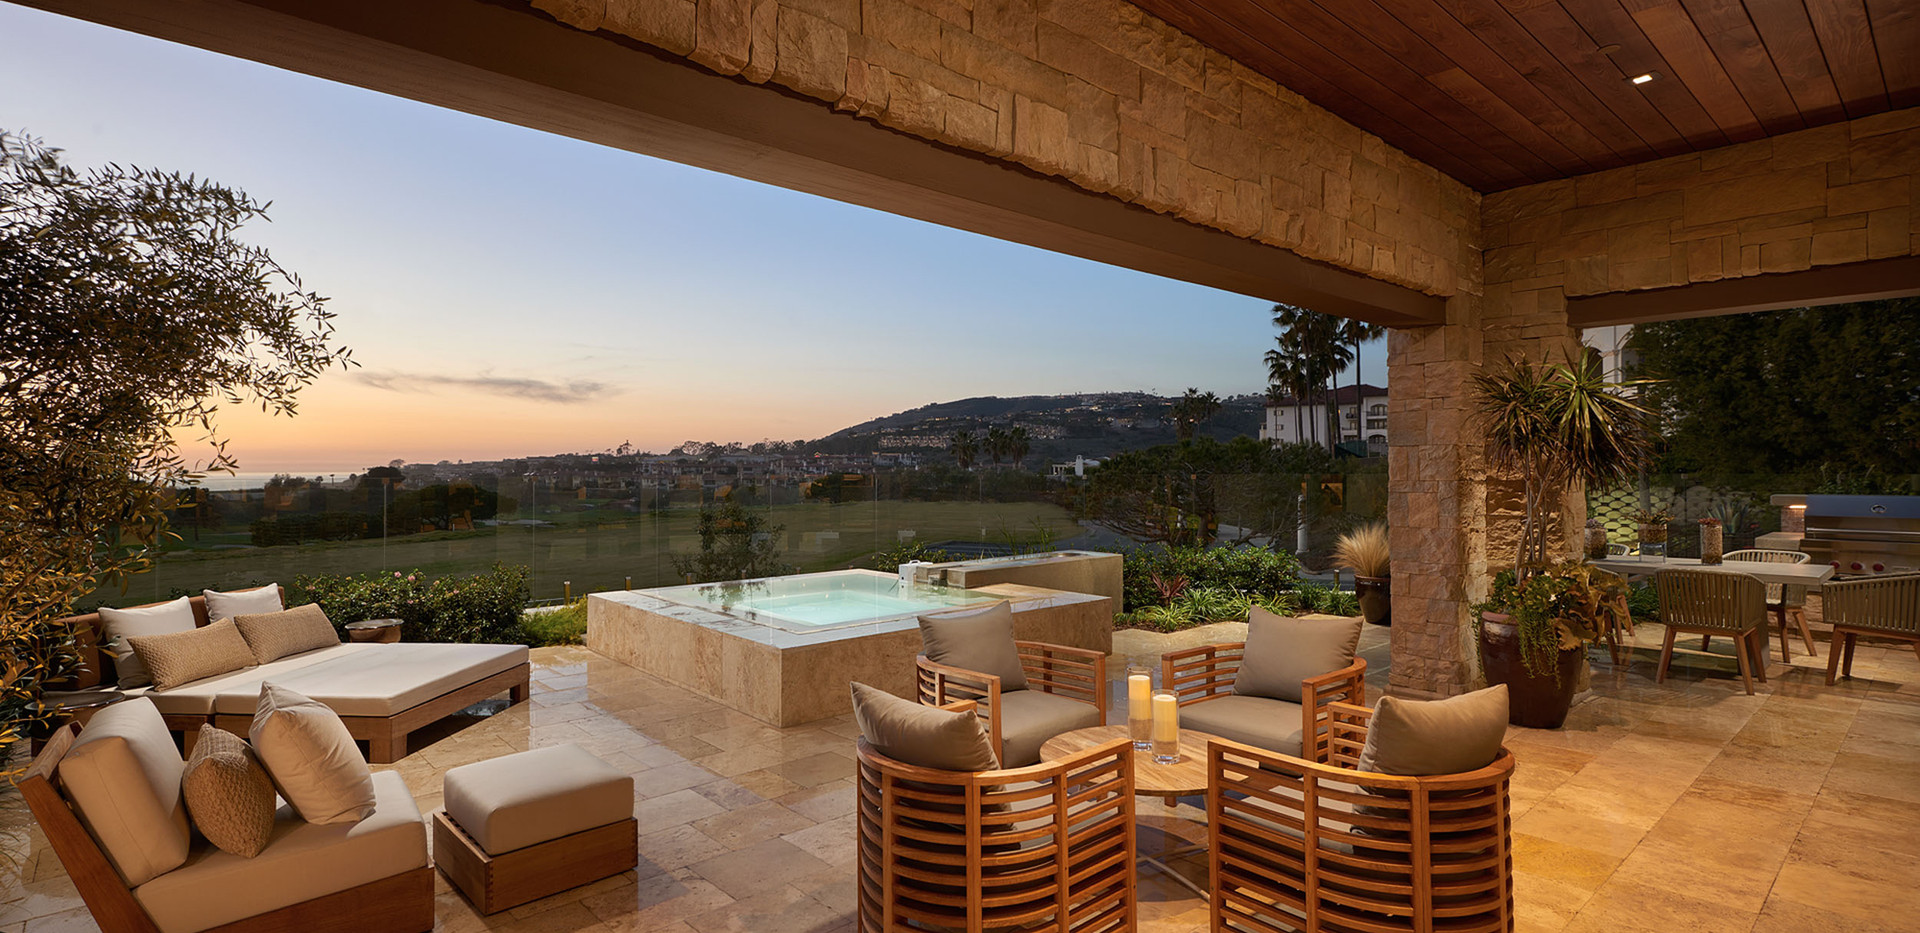 The Grand Monarch - Dana Point CA - By William Lyon Homes